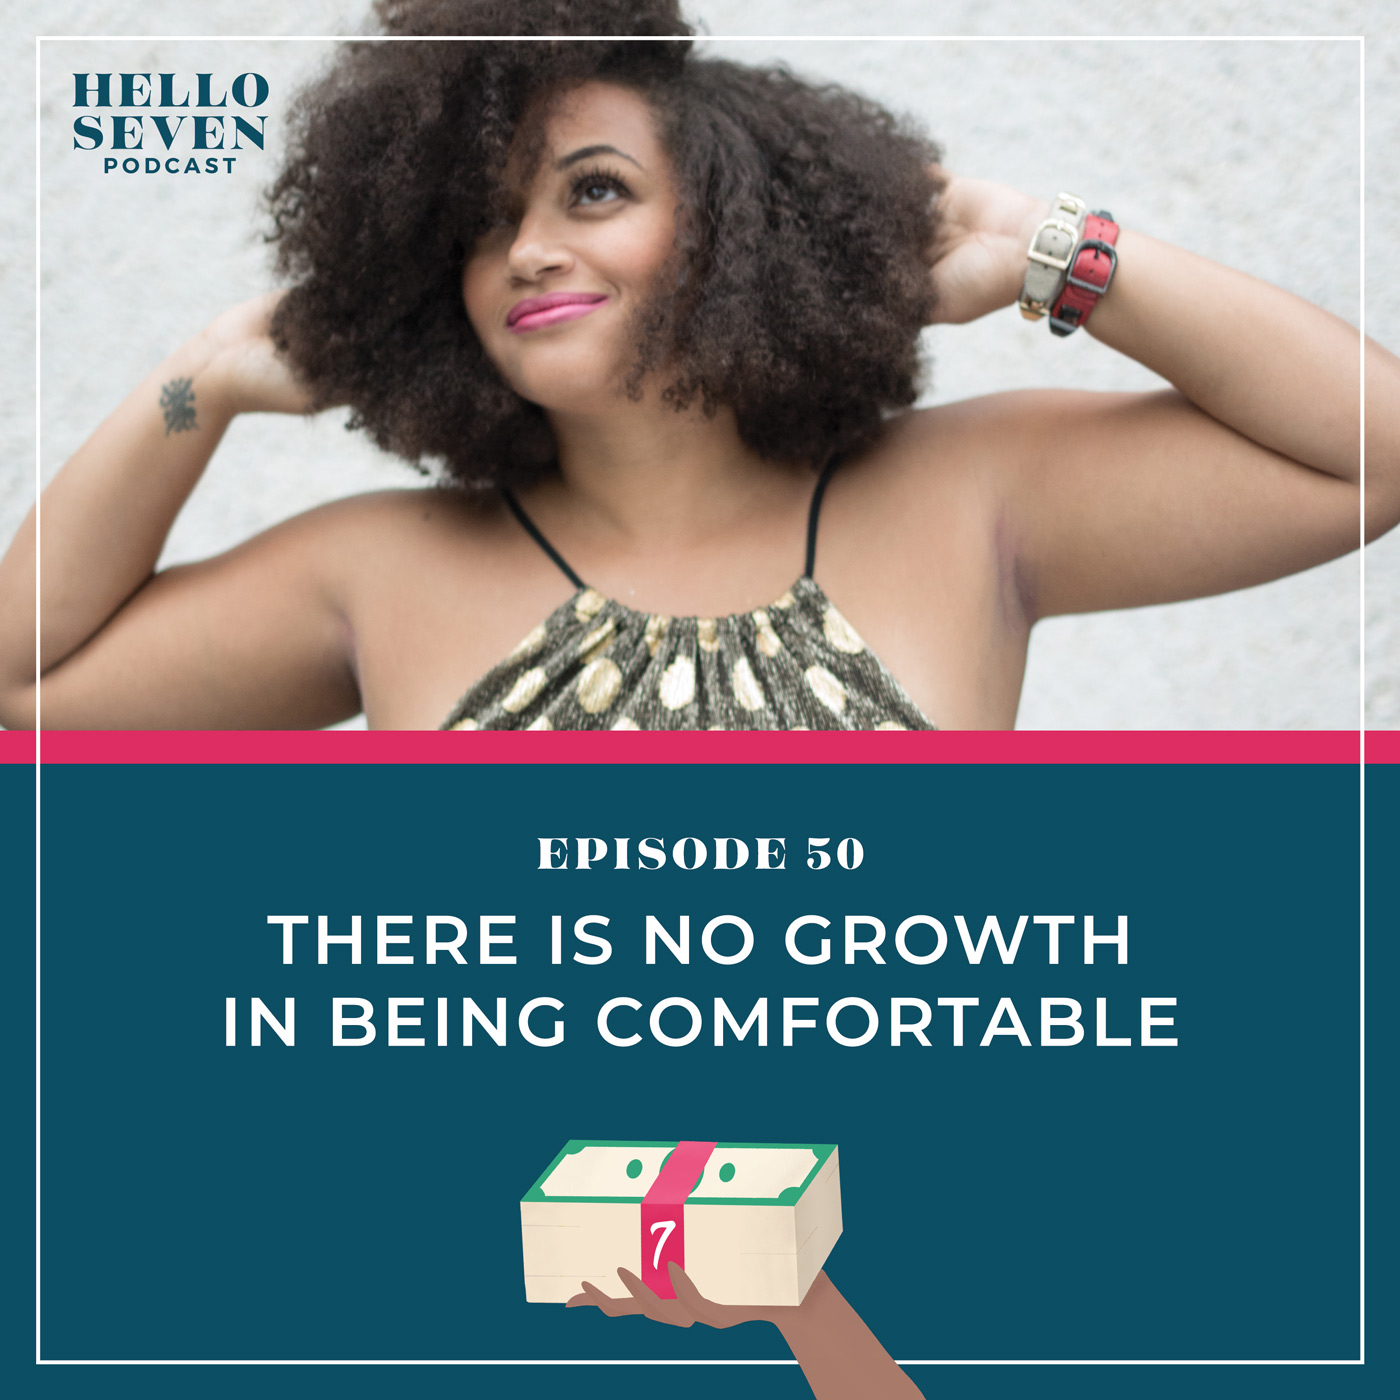 There Is No Growth in Being Comfortable